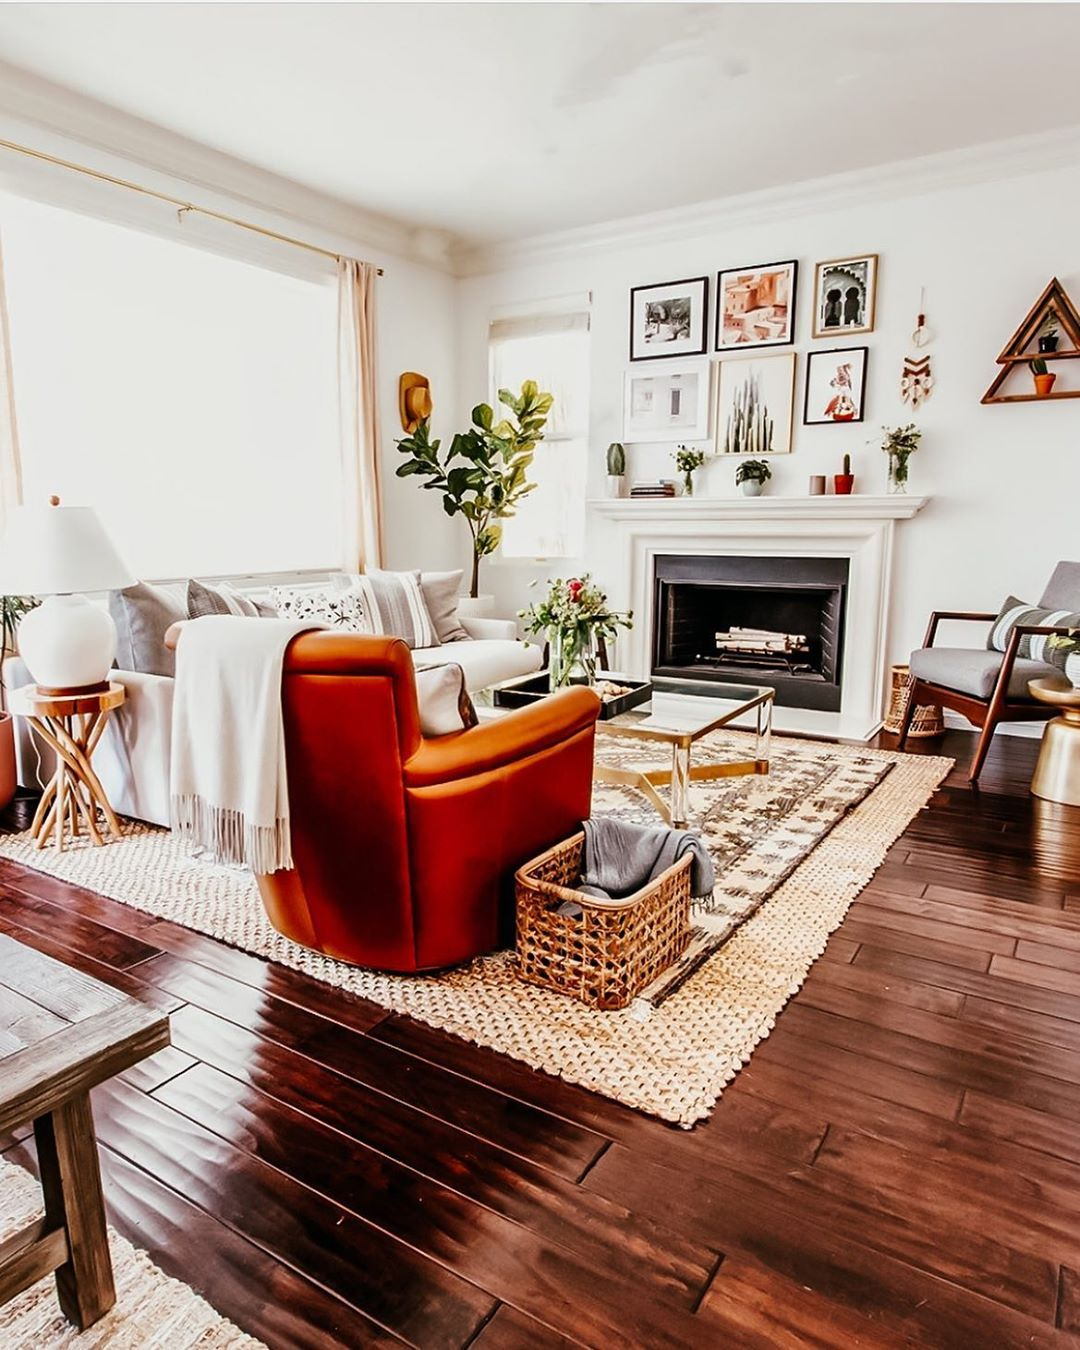 **LAST CHANCE** Take one last look at our old family room ... on Fireplace Casual Living id=39193